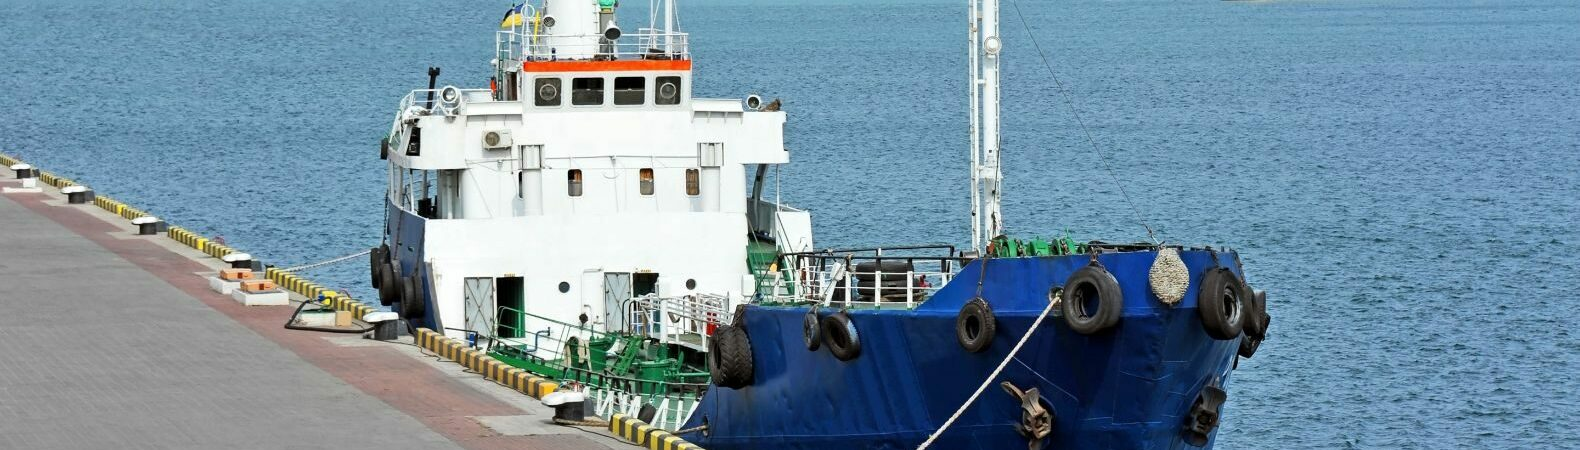 traveling services bunkering